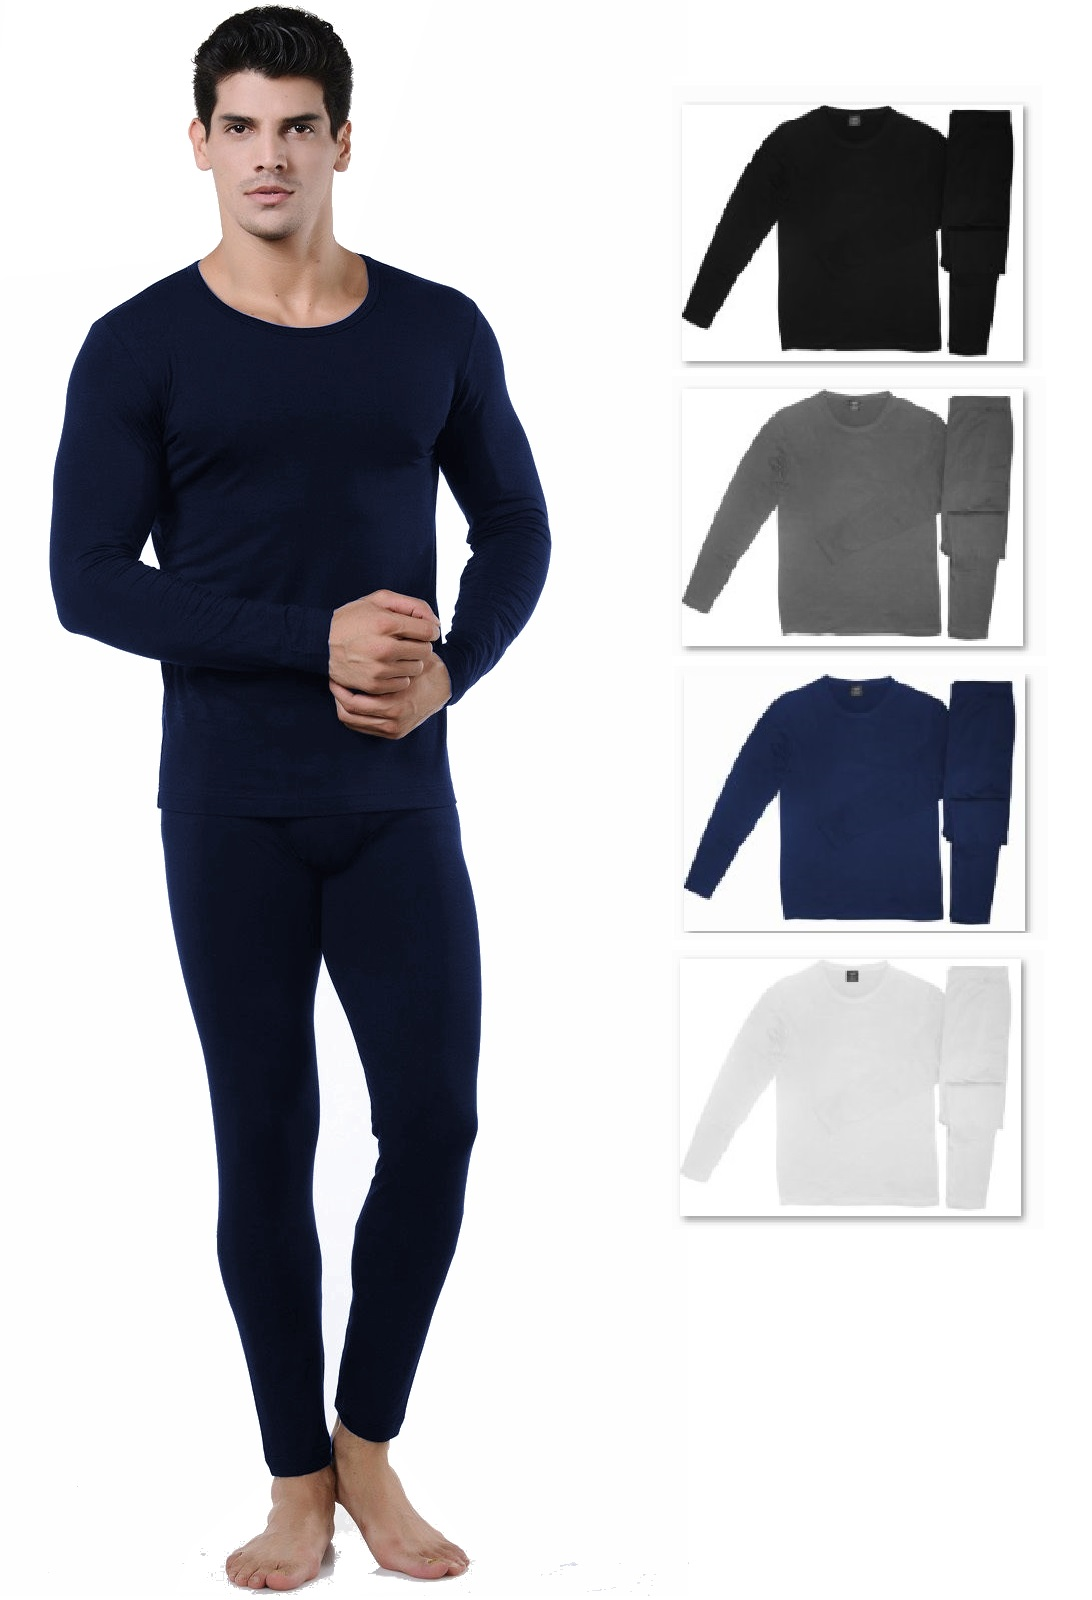 official shop custom convenience goods Men's Ultra Soft Tagless Fleece Lined Thermal Top & Bottom Long Johns  Underwear Set